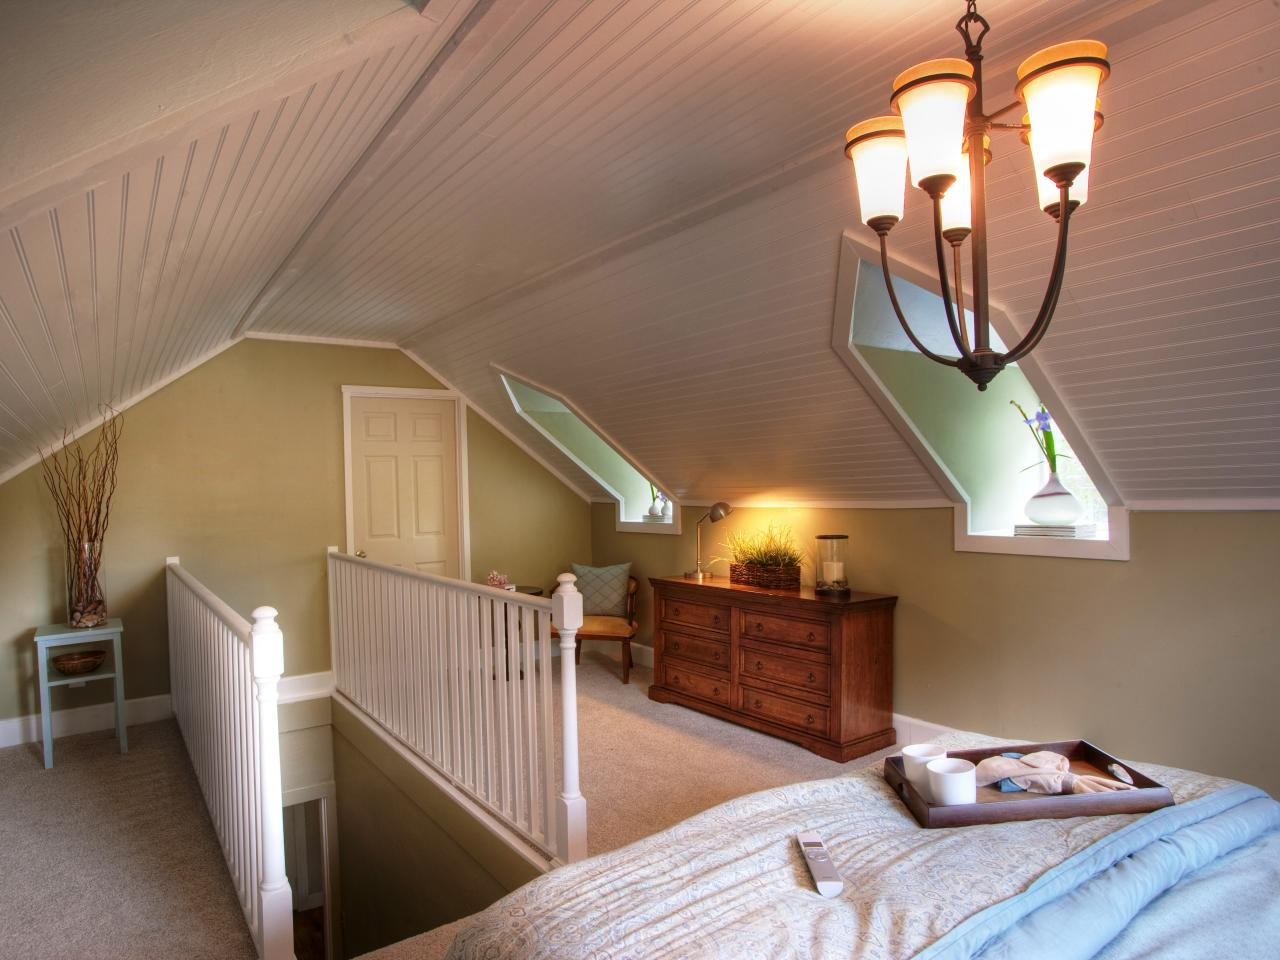 16 amazing attic remodels storage ideas how tos for for Attic bedroom ideas